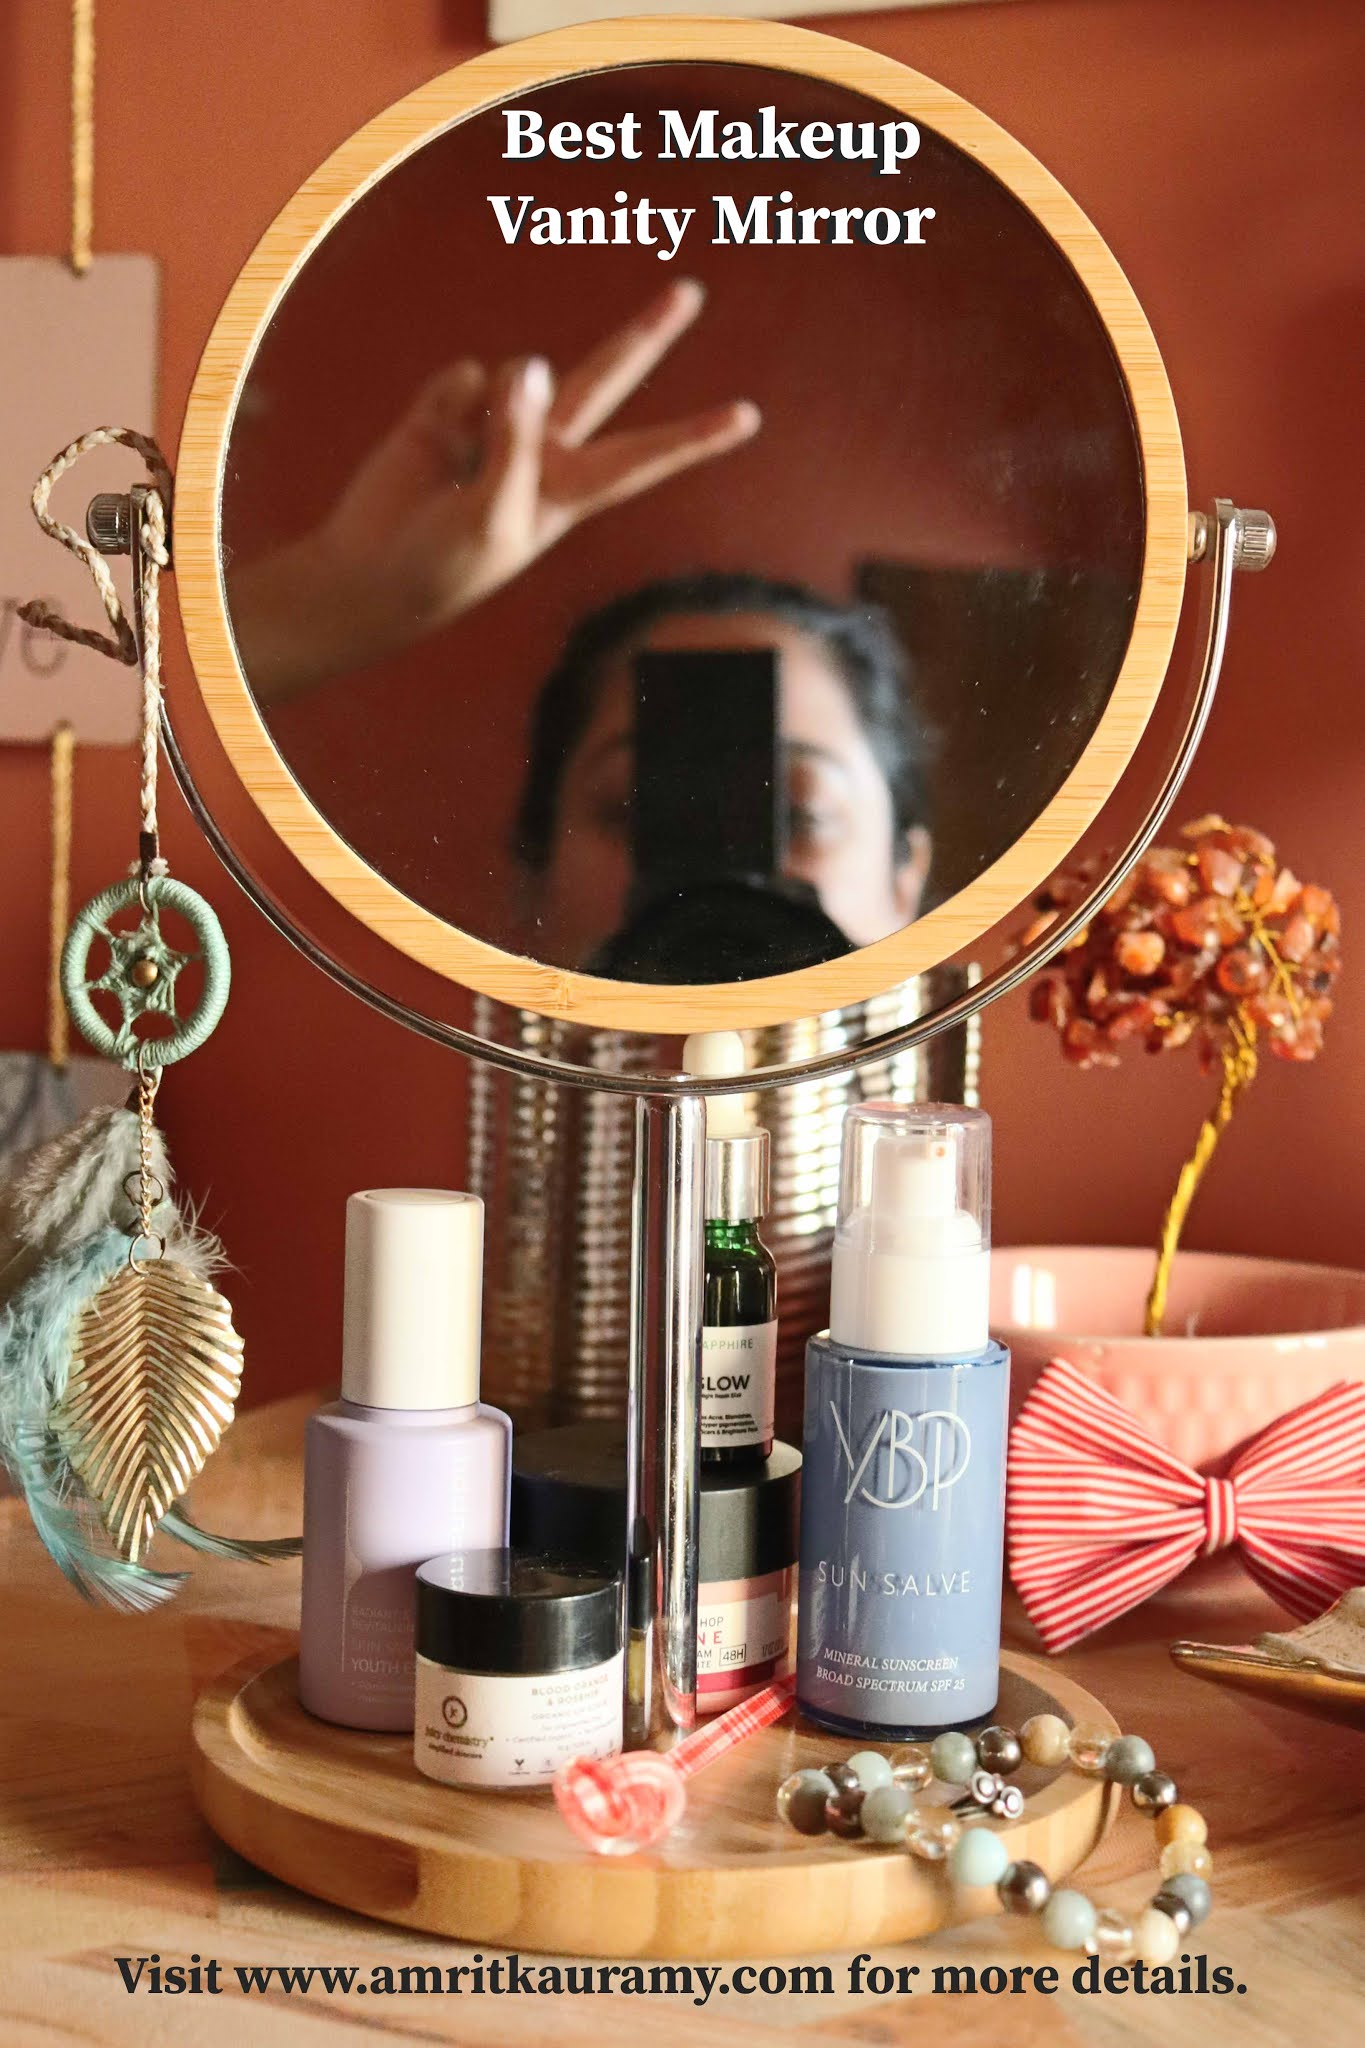 Best Makeup Mirror - Home Centre | Pinterest